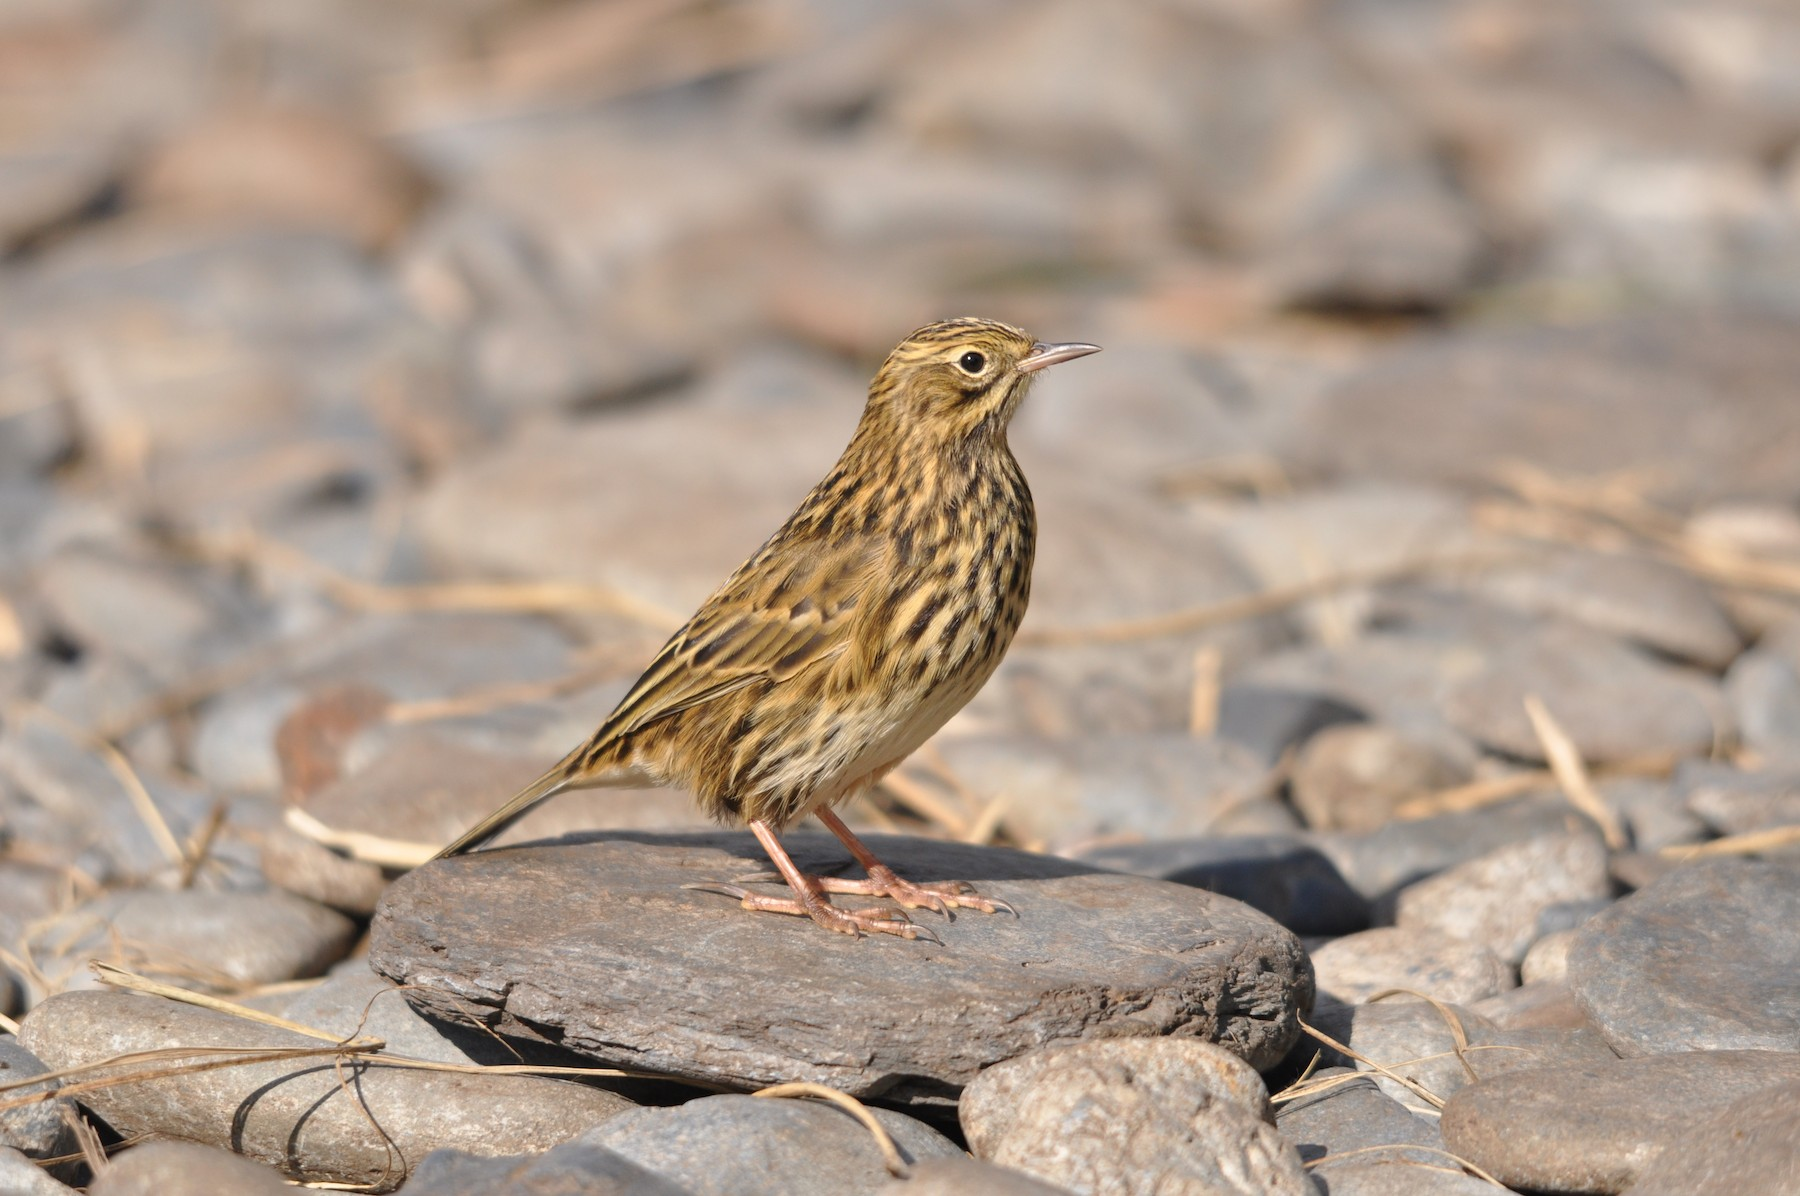 South Georgia Pipit - Heidi Krajewsky